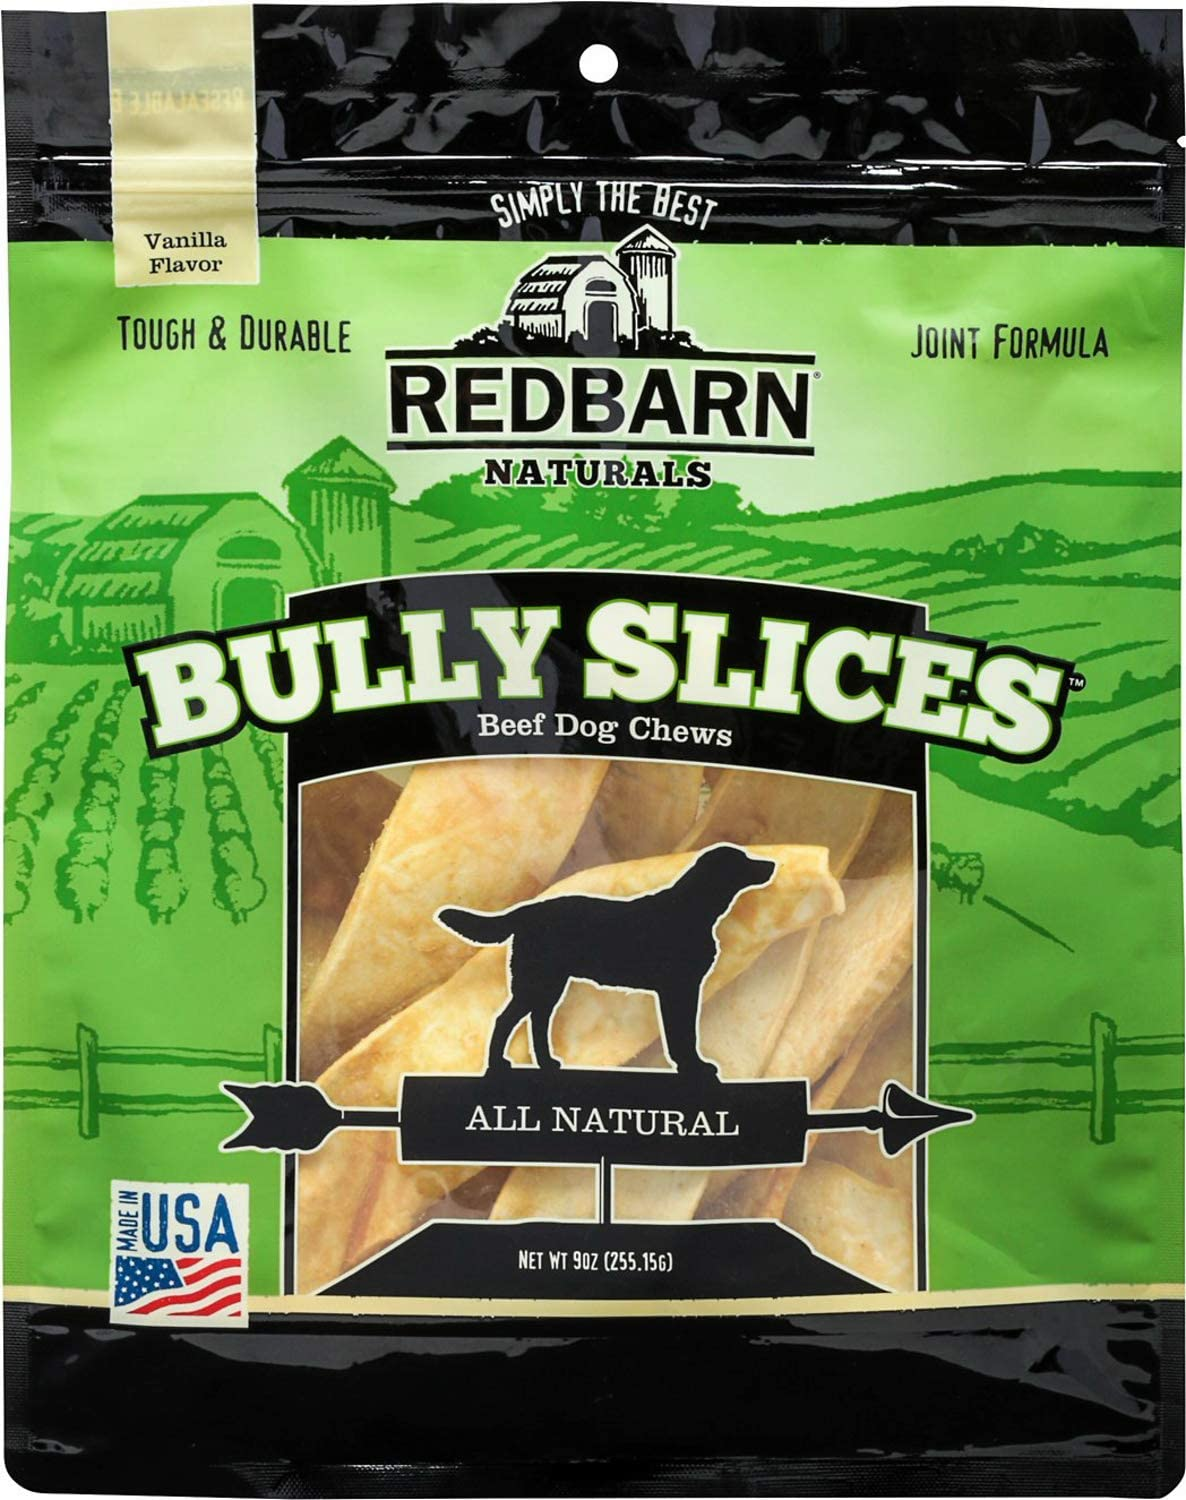 Red Barn Naturals Bully Slices Beef Dog Chews, Vanilla, 9 Ounce, 6 Pack